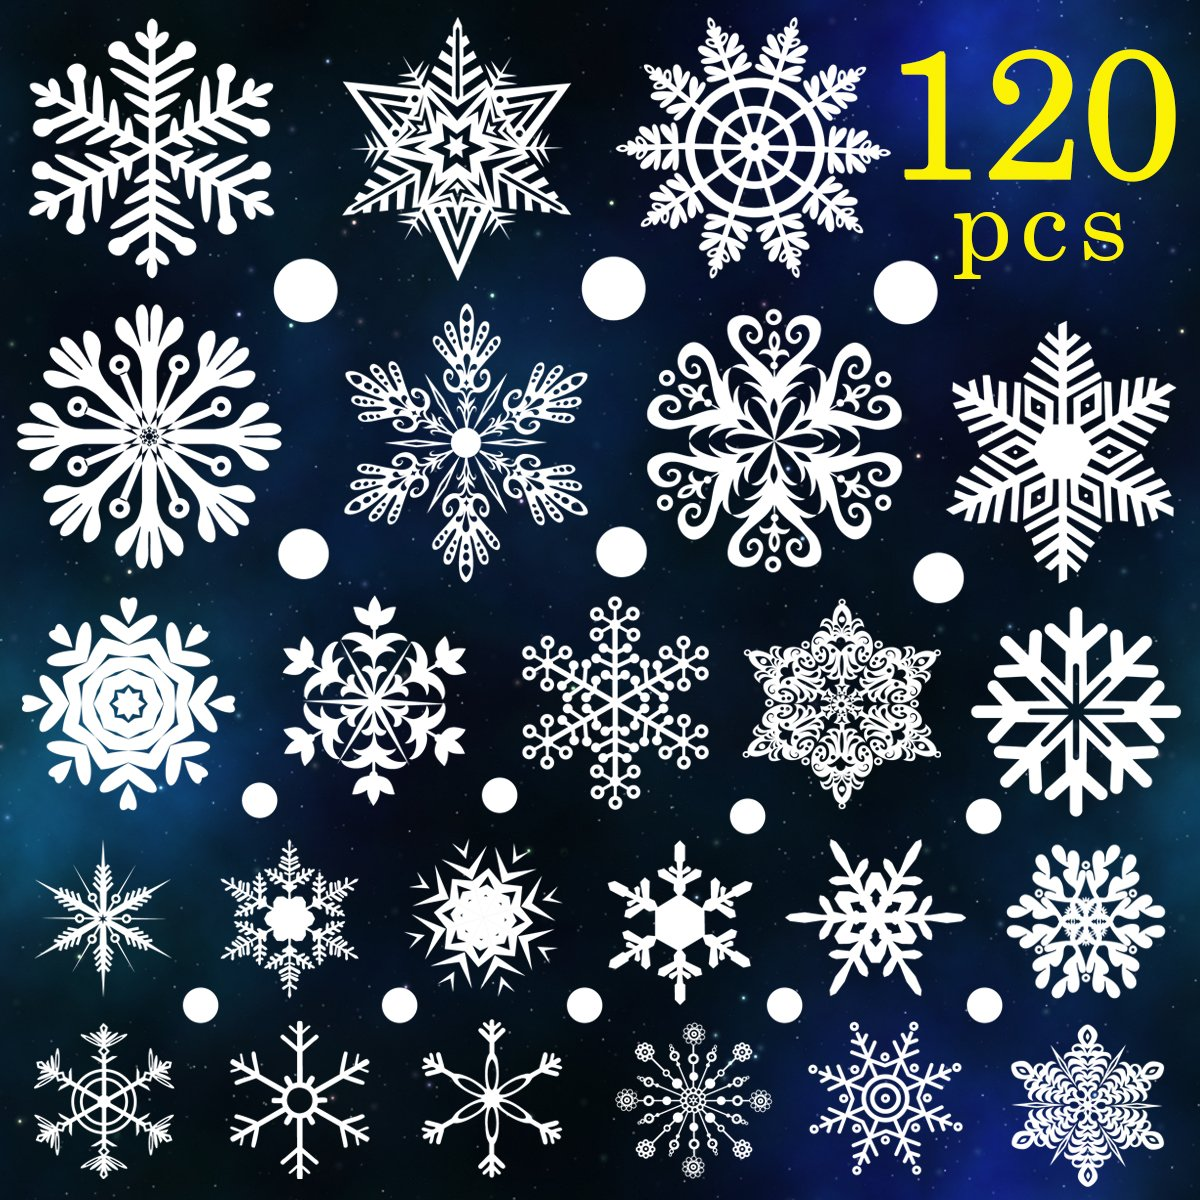 Ivenf 120pcs White Snowflakes Window Clings Decal Winter Wonderland Christmas Decorations Ornaments Holiday Party Supplies (6 Sheets)